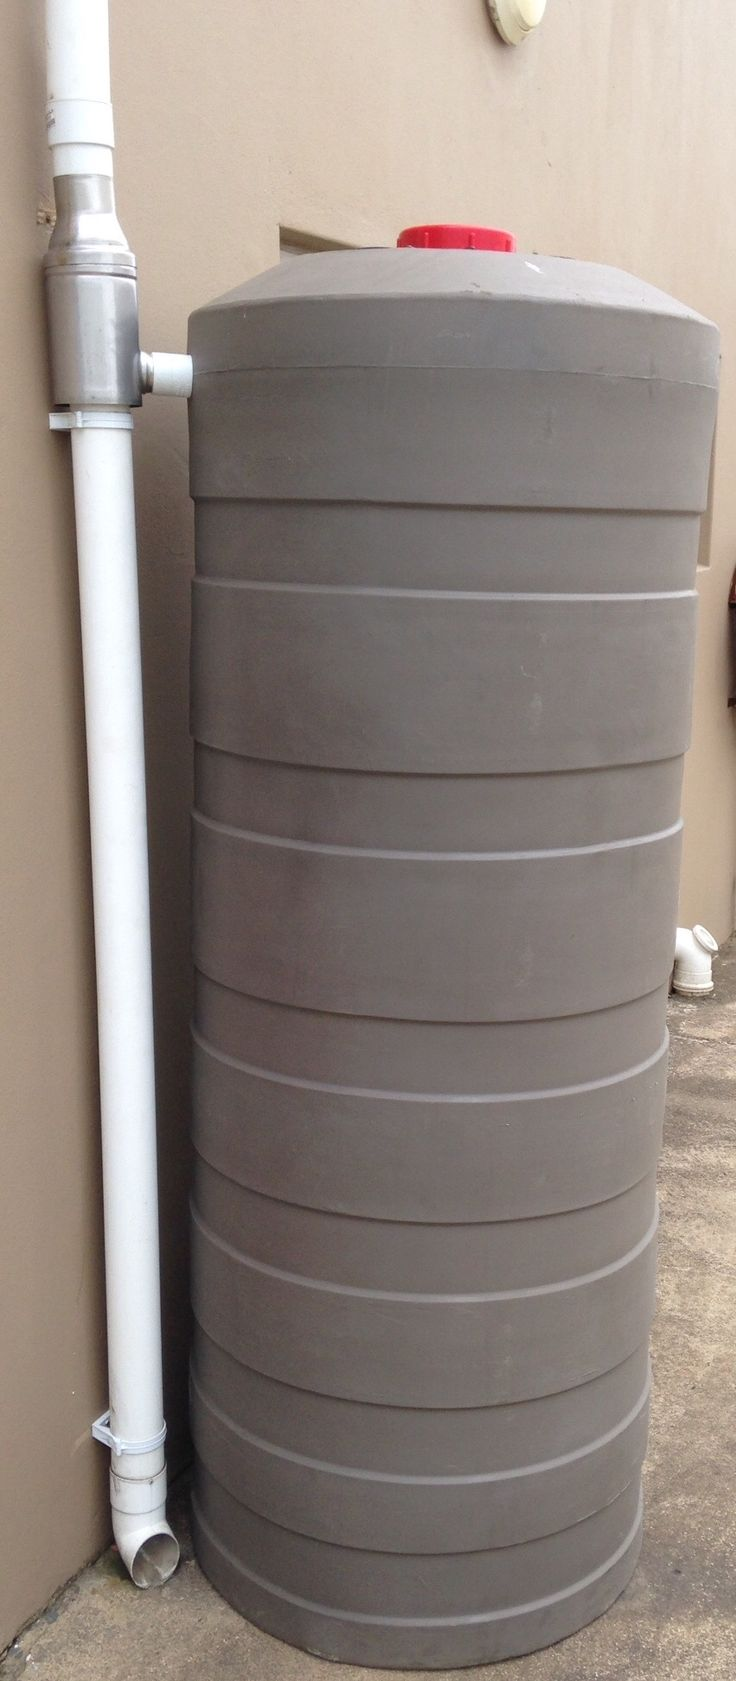 Description rainwater harvesting system jpg - Small 800l Rainwater Harvesting System For Factory Water Is Used For General Washing